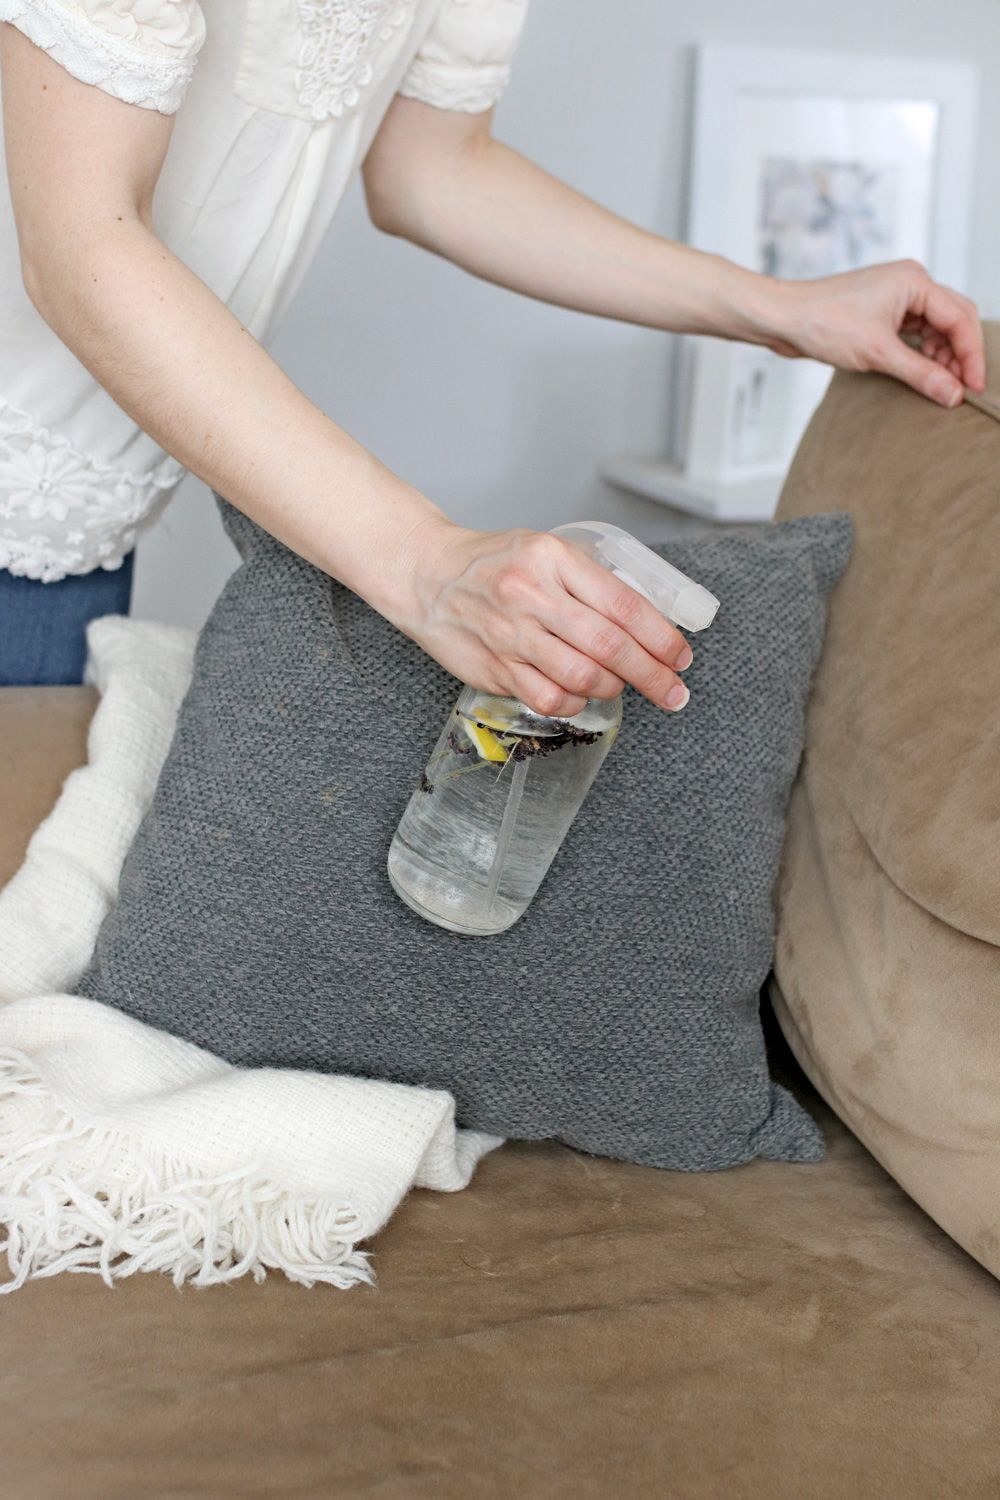 Freshen Up Your Furniture With This Diy Upholstery Spray Recipe Diy Upholstery Cleaner Upholstery Cleaner How To Clean Furniture